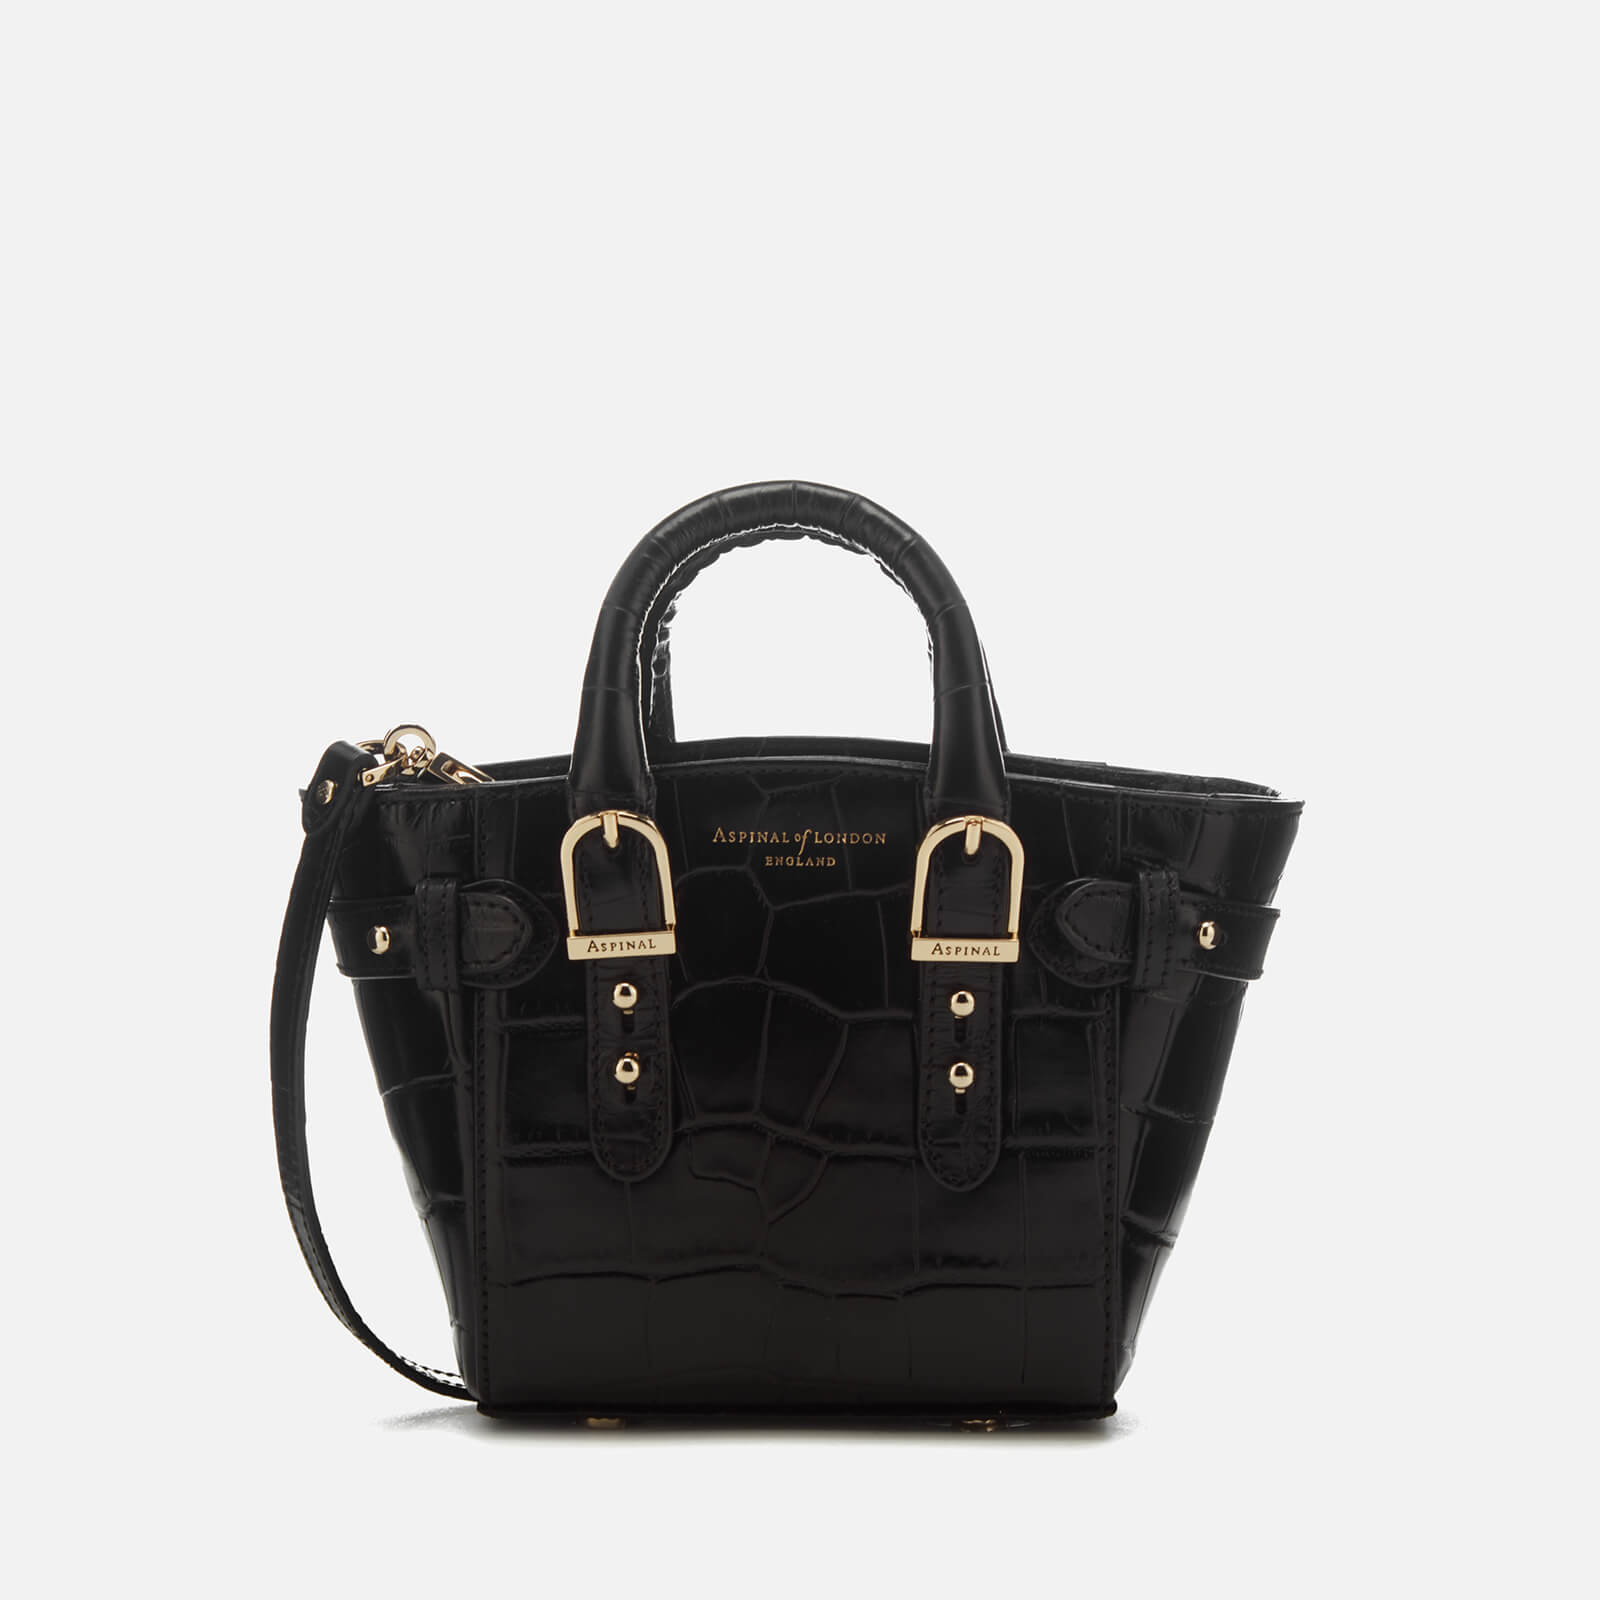 6c3f83bfd2fb0 Aspinal of London Women s Marylebone Micro Tote Bag - Black - Free UK  Delivery over £50